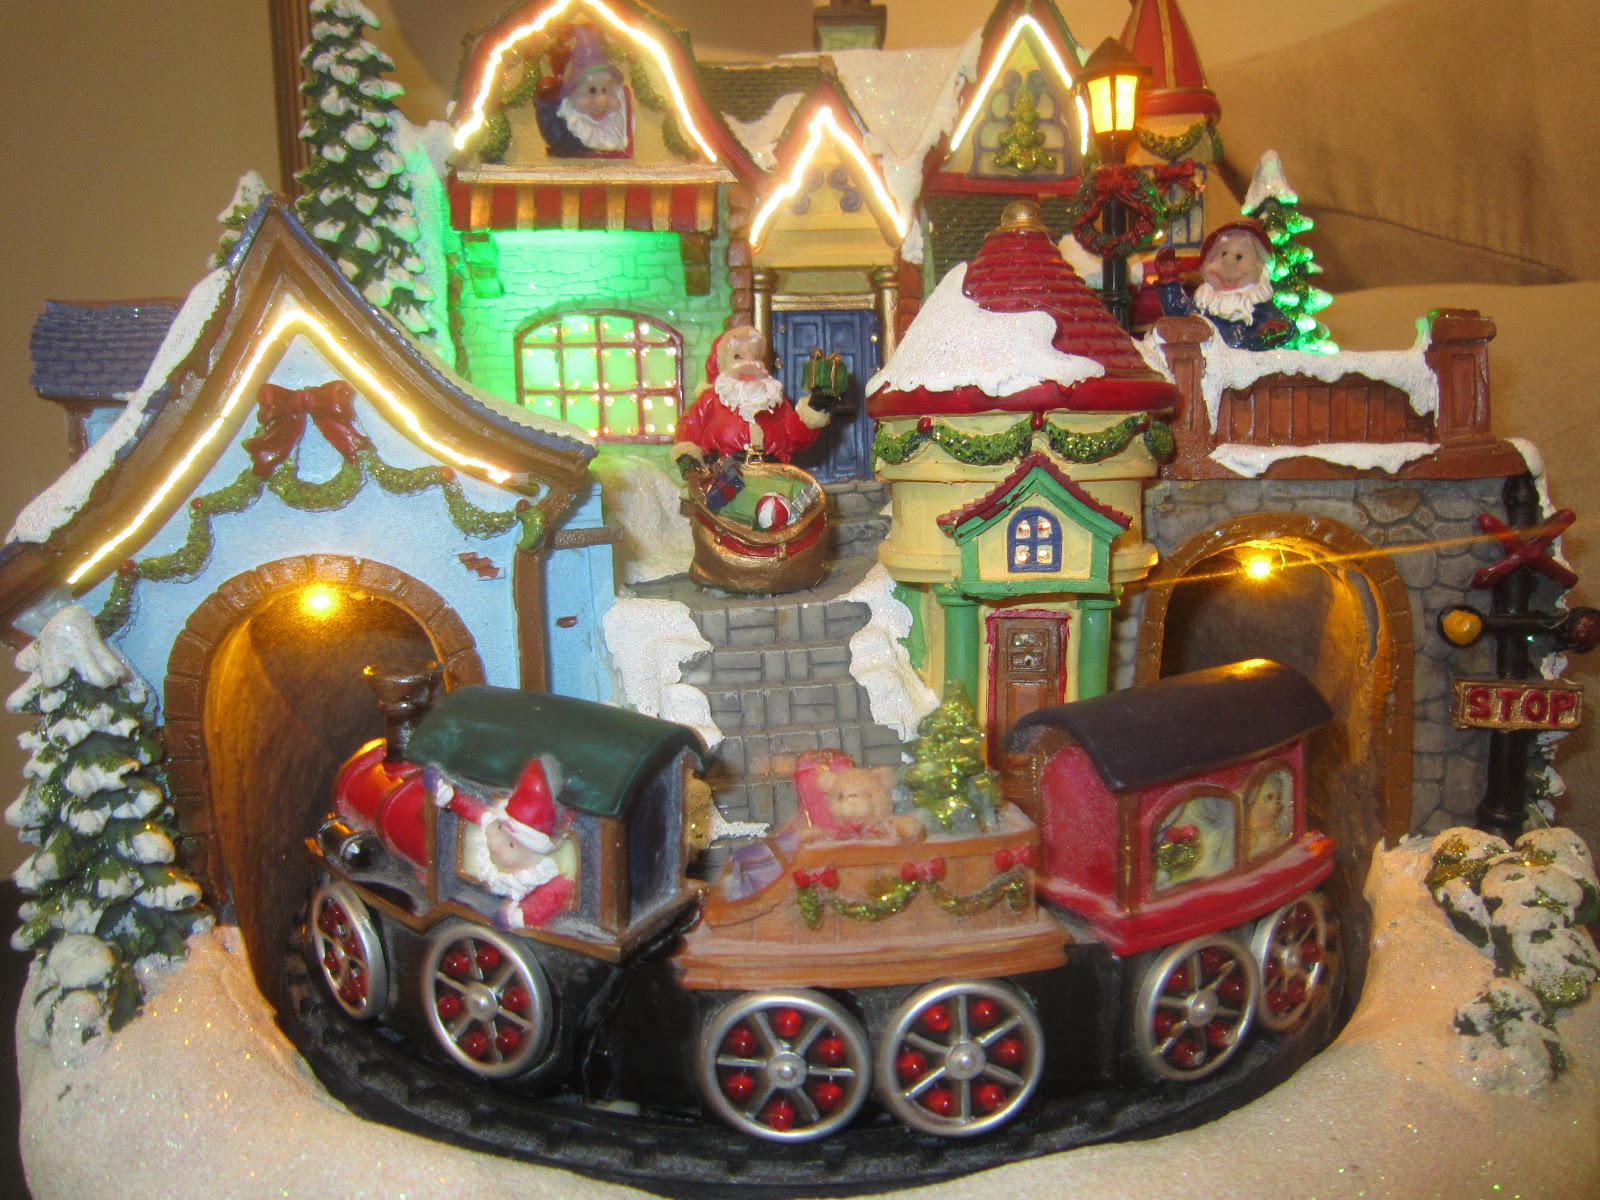 Santa's village, Christmas decor